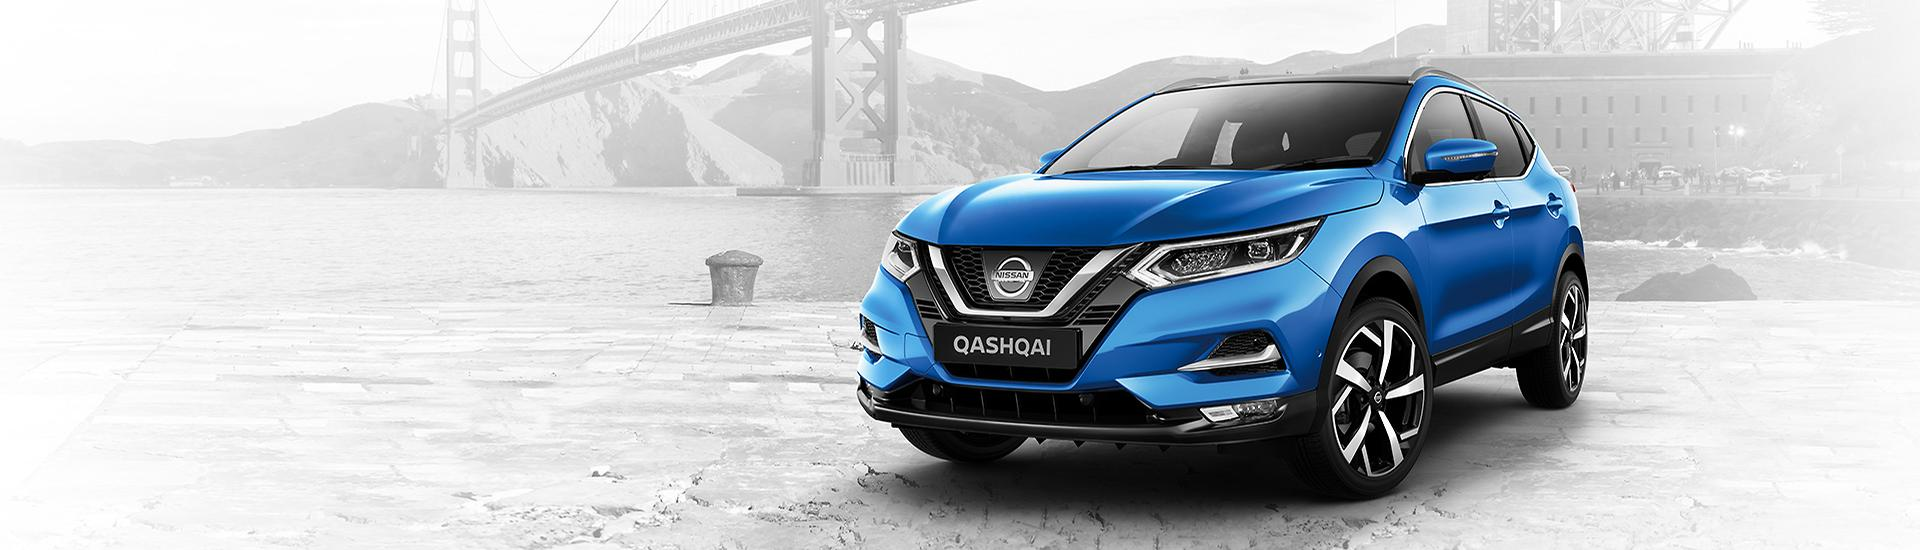 new nissan qashqai suv cars for sale - carsales.au